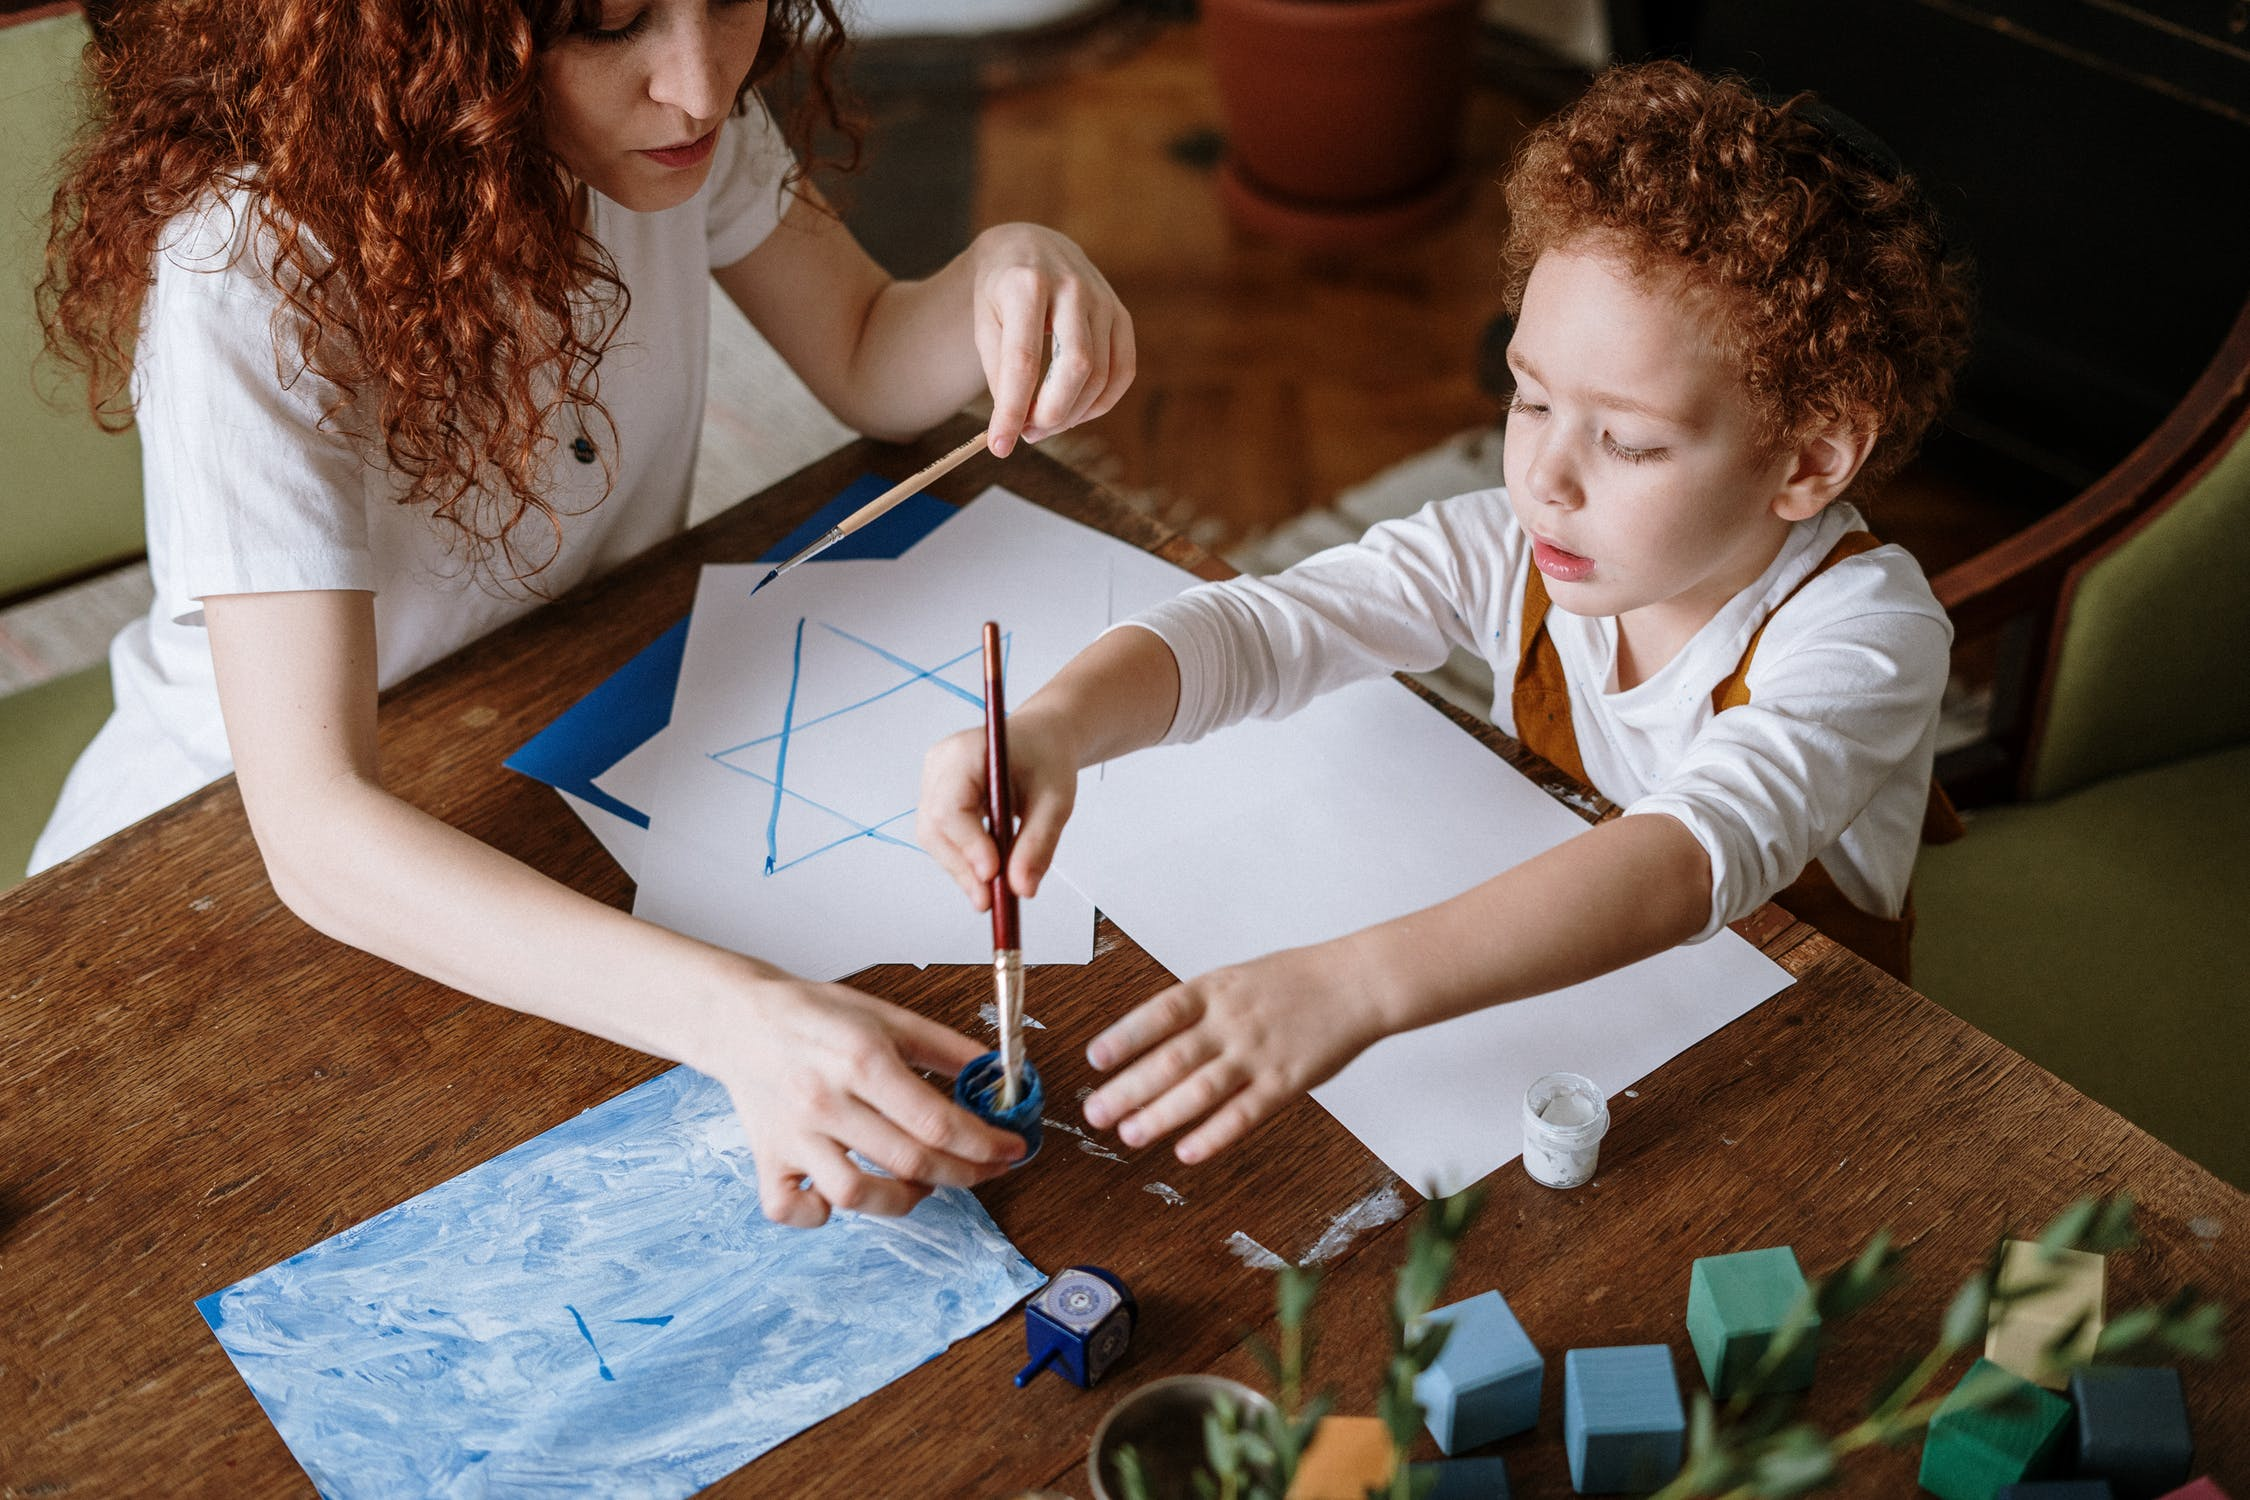 Mom and Child create artwork together